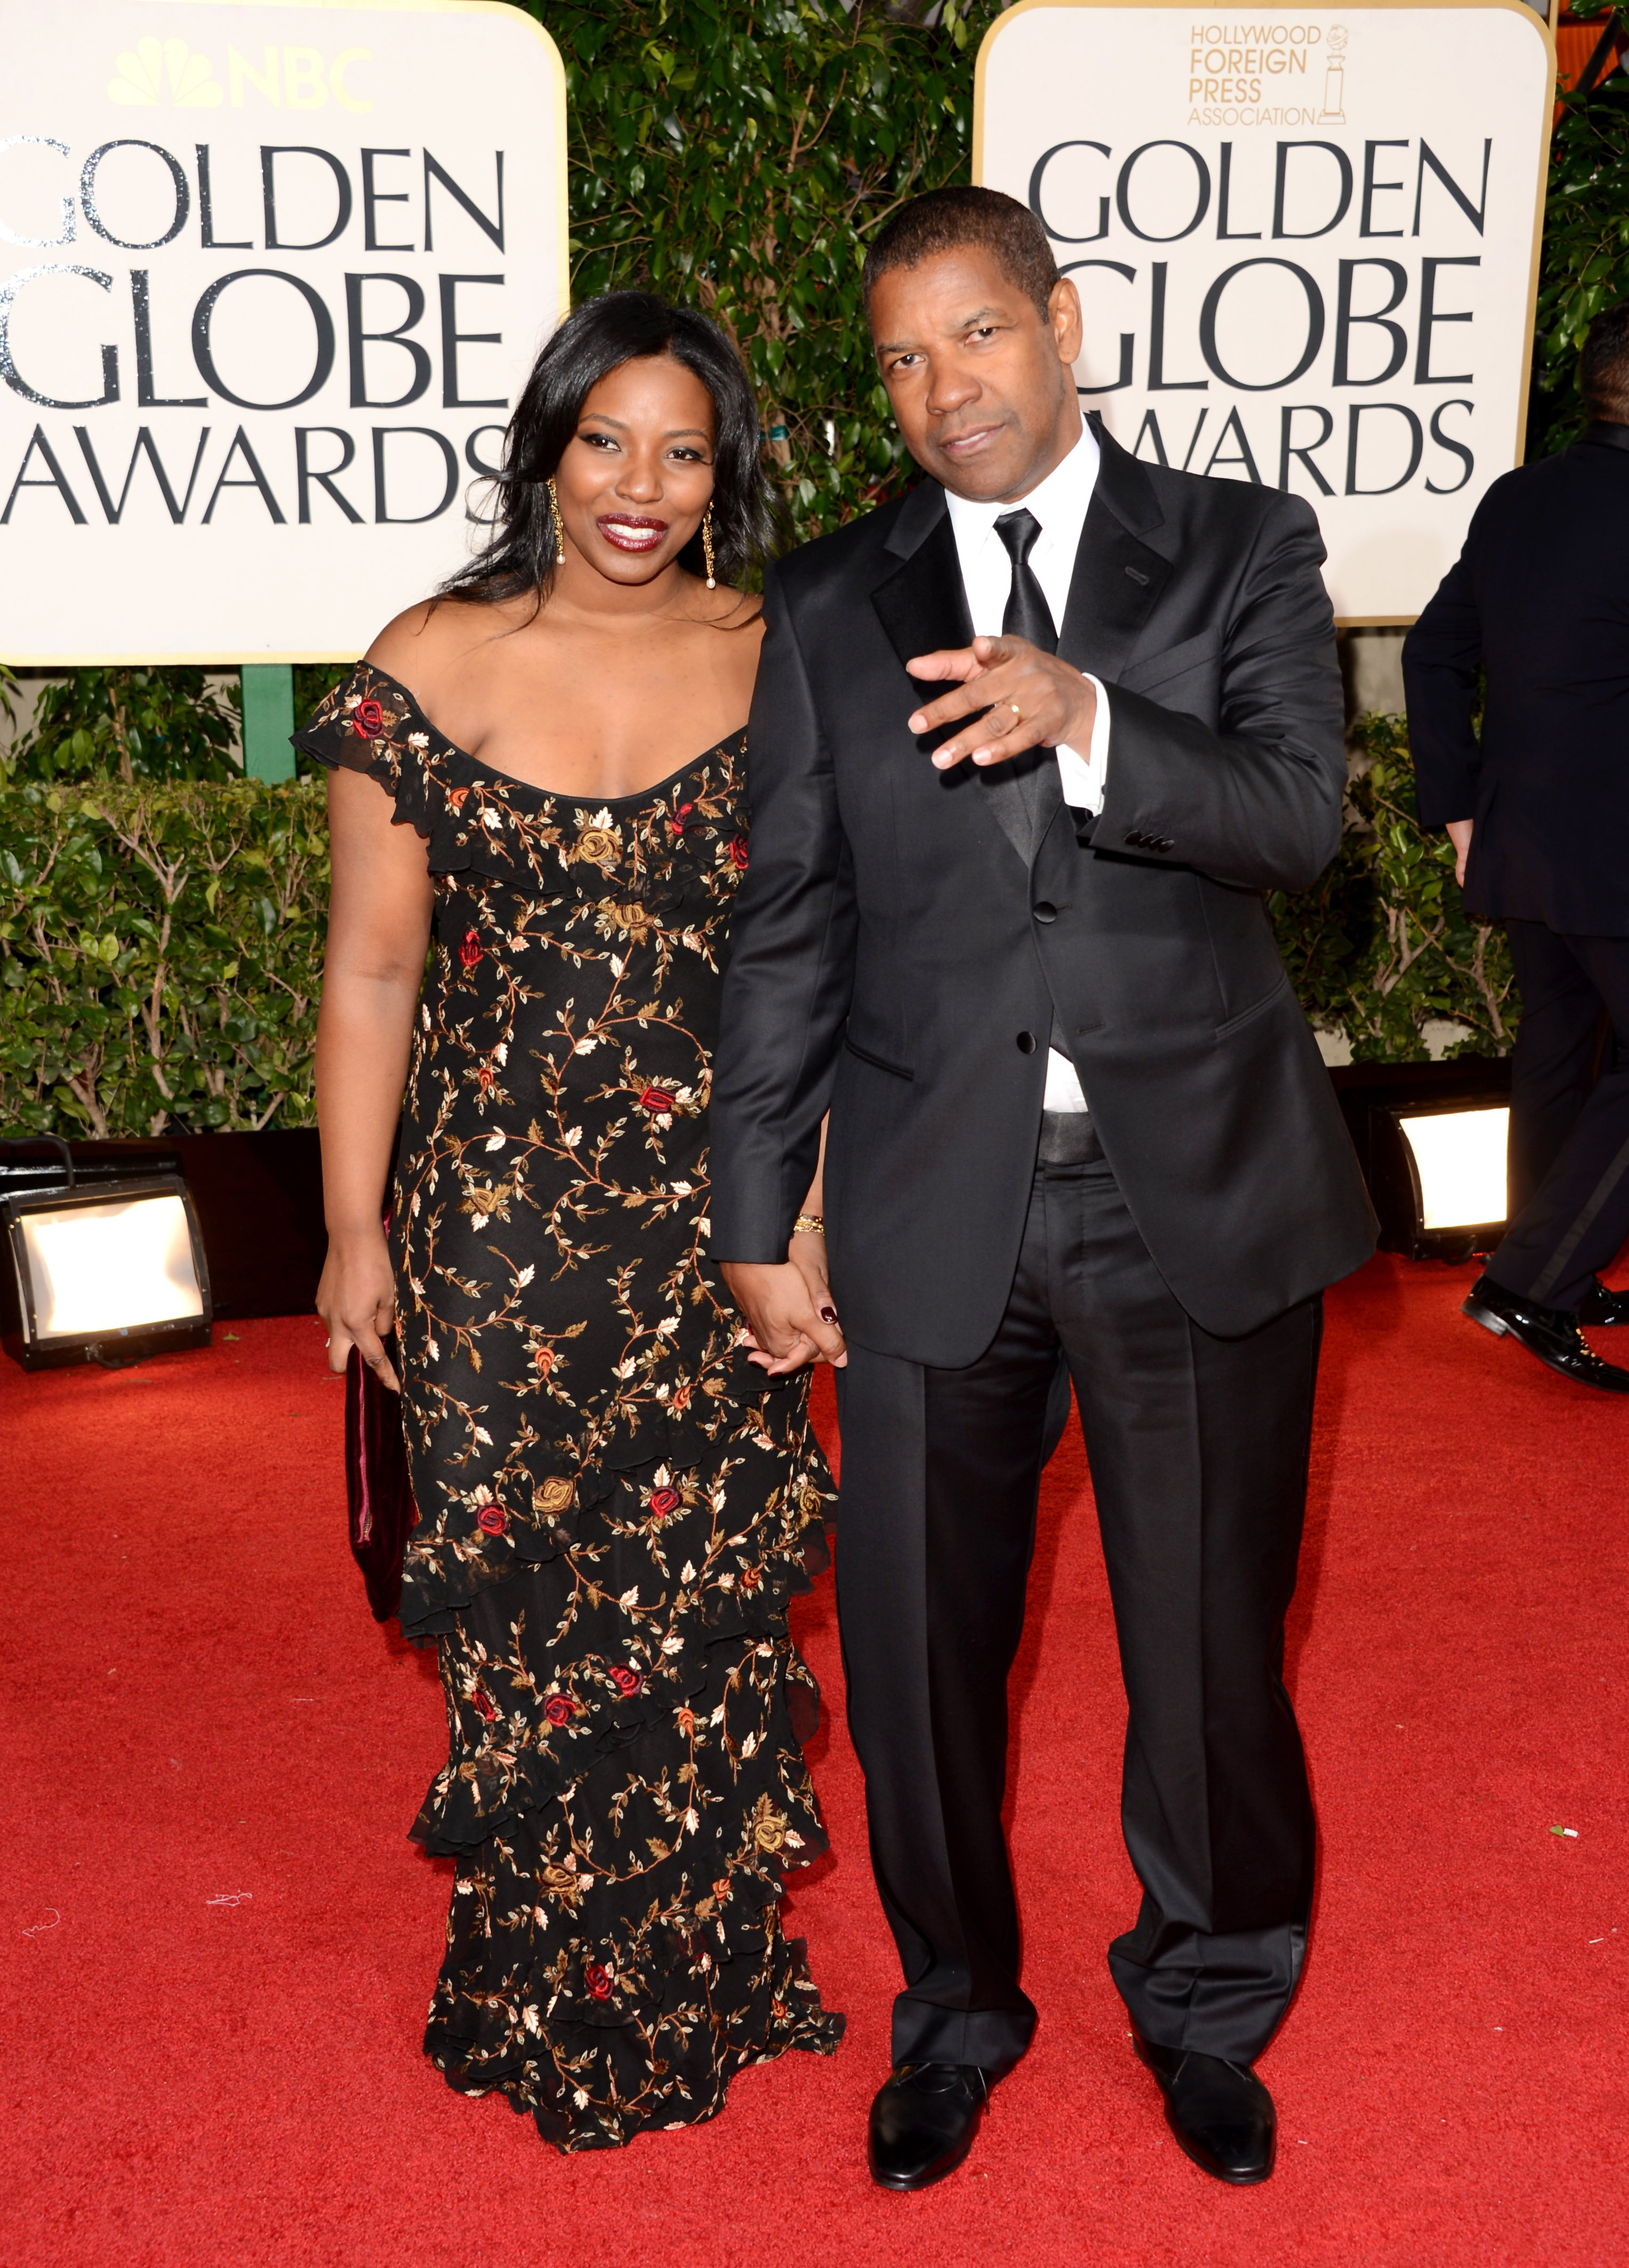 Pauletta Washington Fell In Love With Denzel S Spirit Here S How Their Relationship Started